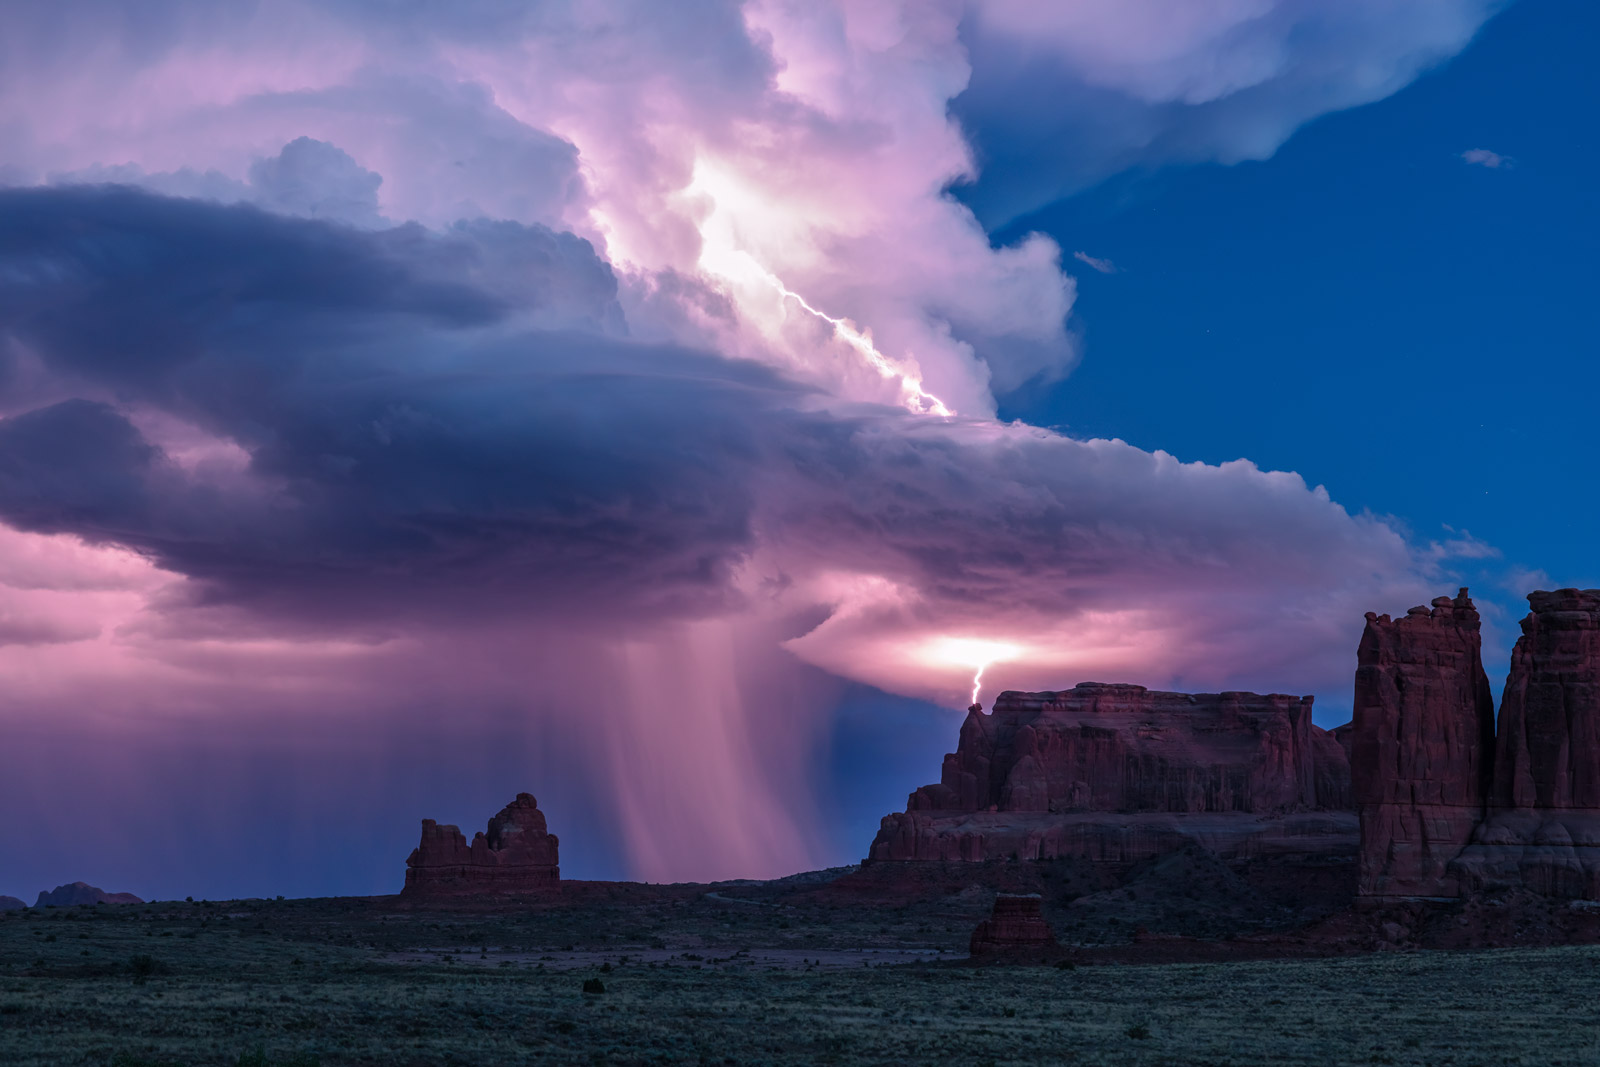 A Limited Edition, Fine Art photograph in Arches National Park of a dramatic lightning strike on the red rocks of the desert...